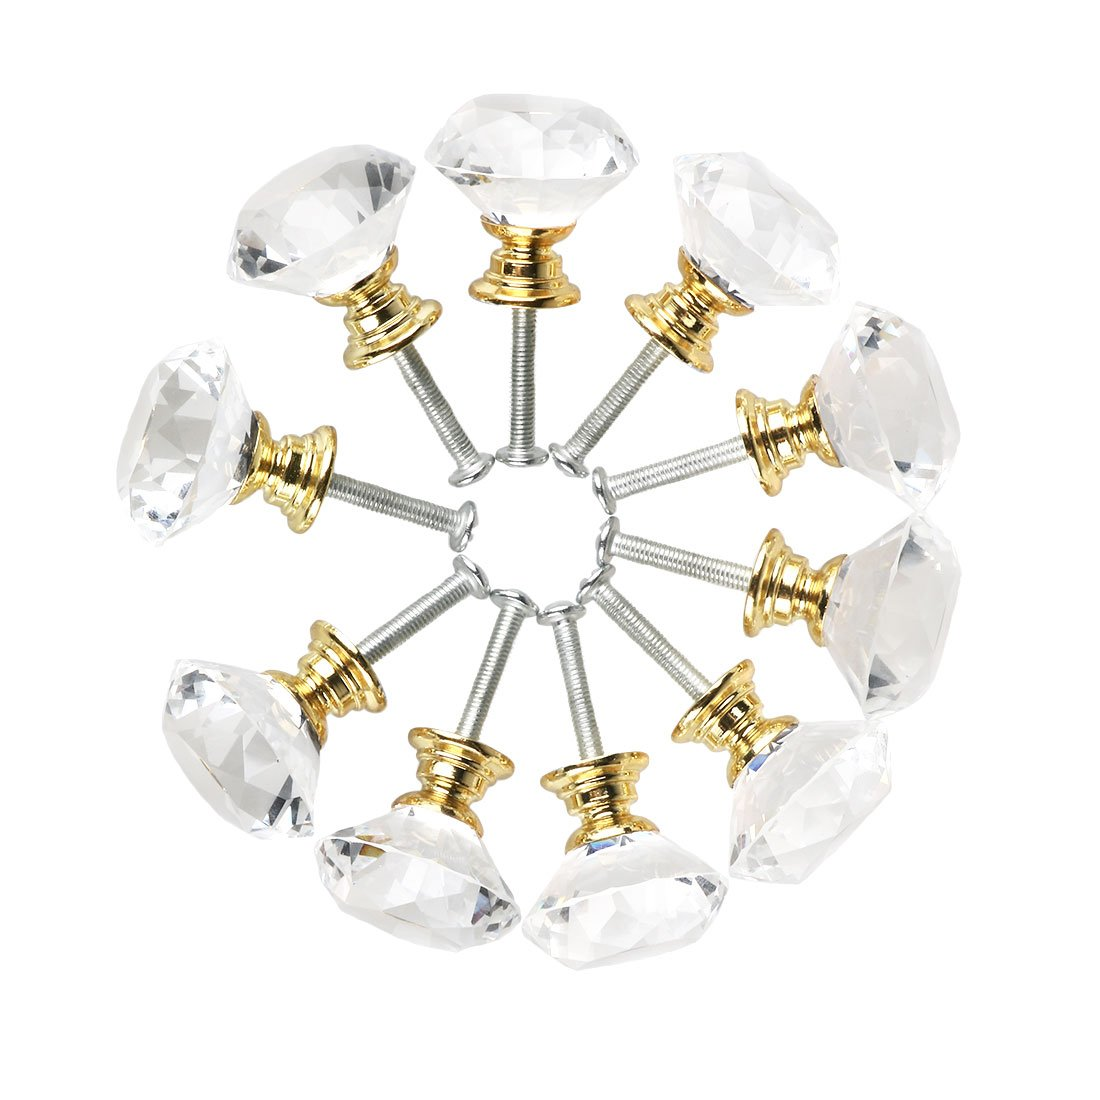 uxcell Diamond Shape Crystal Glass 30mm Kitchen Cabinet Door Drawer Knob Cupboard Dresser Wardrobe Pull Handle with Screws, 10pcs Clear with Gold Tone Base